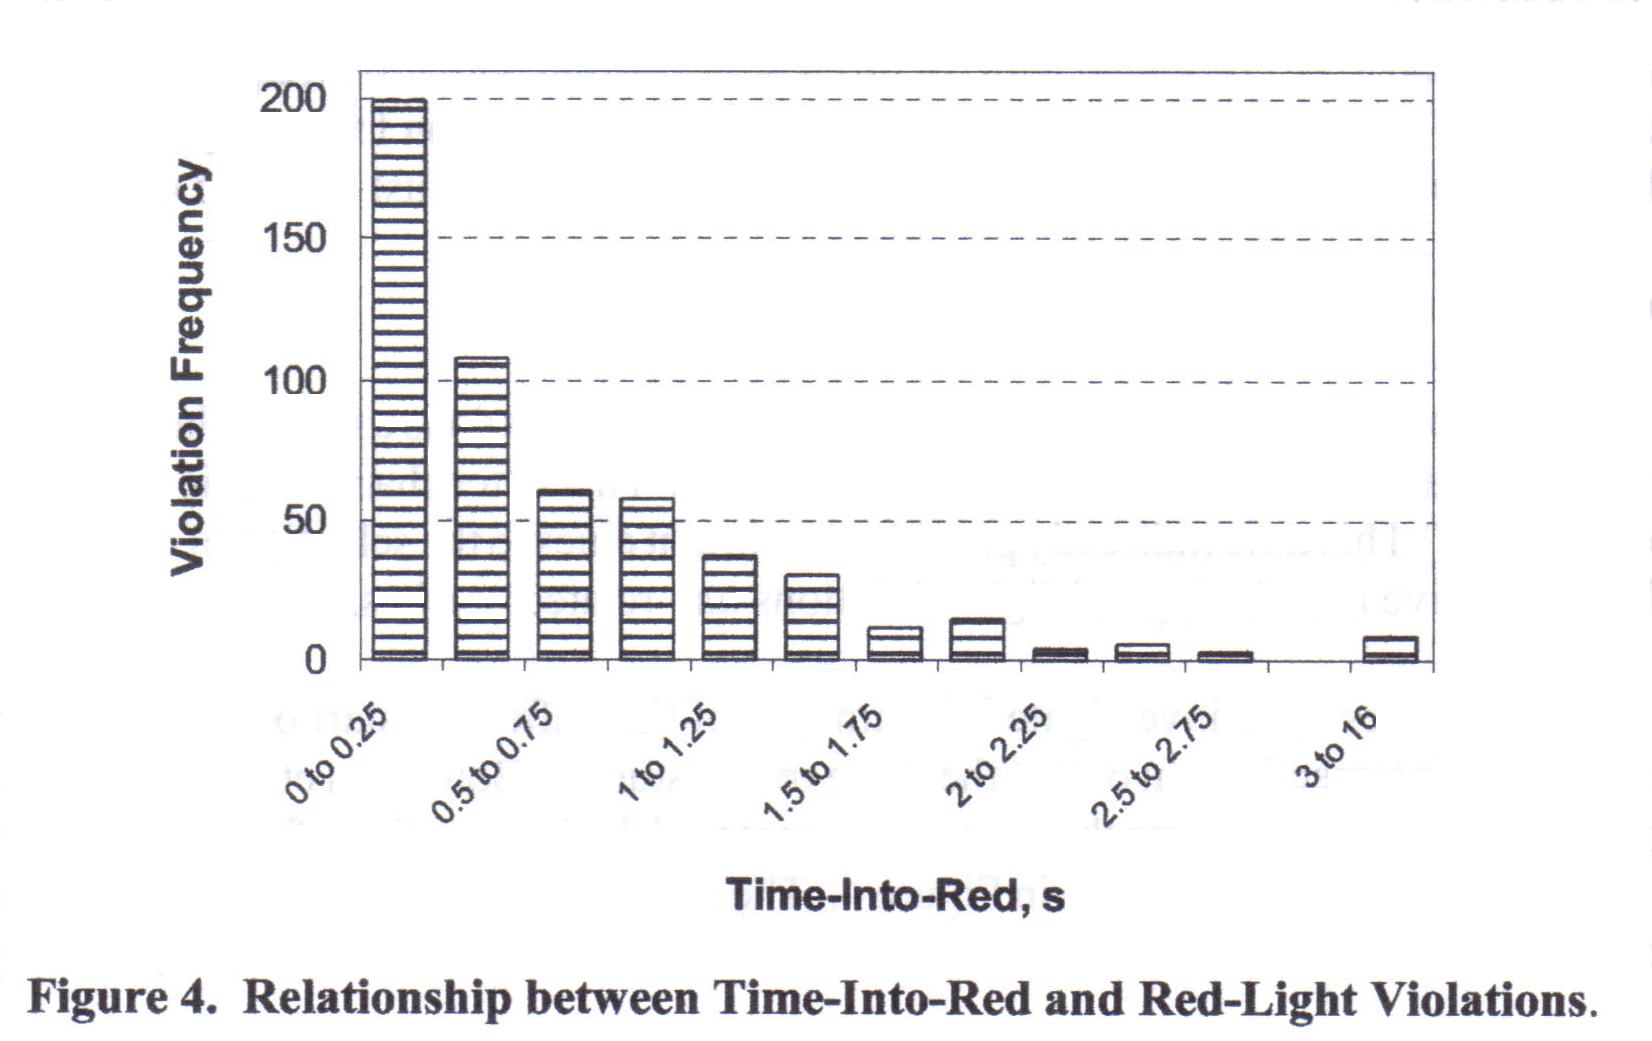 Bonneson Examined 541 Red Light Violations And This Is The Distribution Of  The Number Of Violations Over Time. This Distribution Is Typical Shows That  95% ...